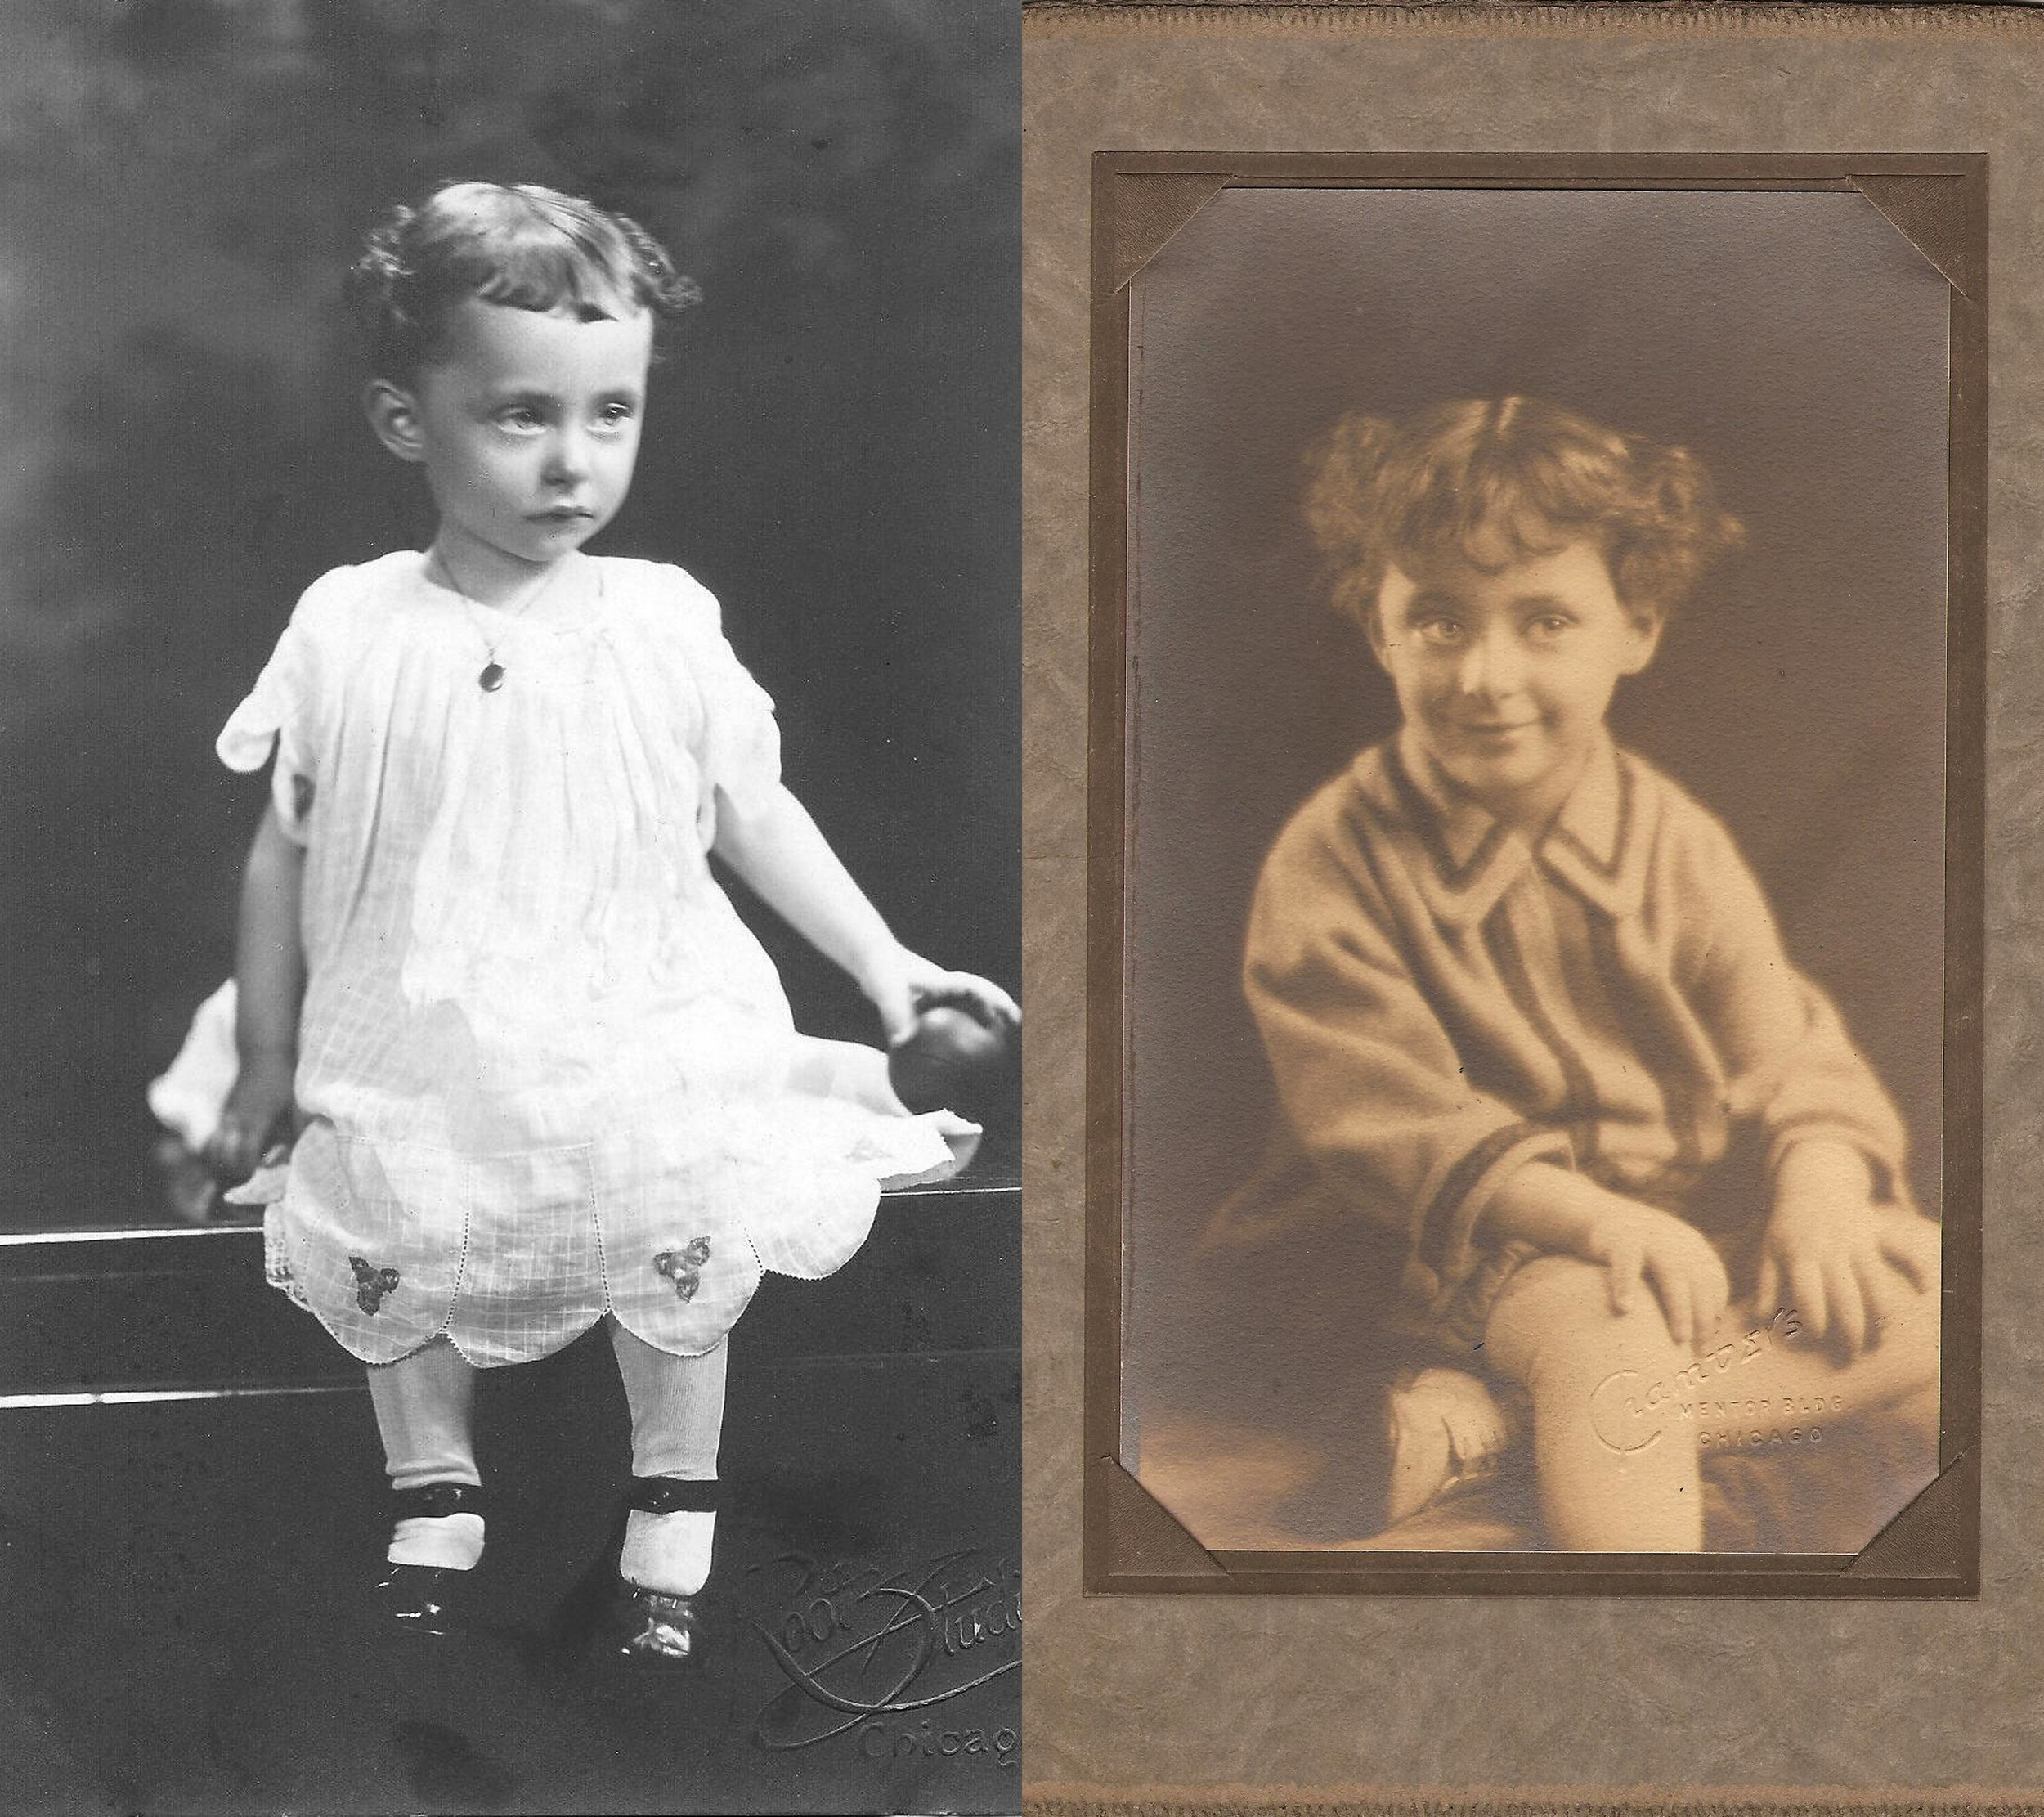 Blossom as a child, mid-1920s